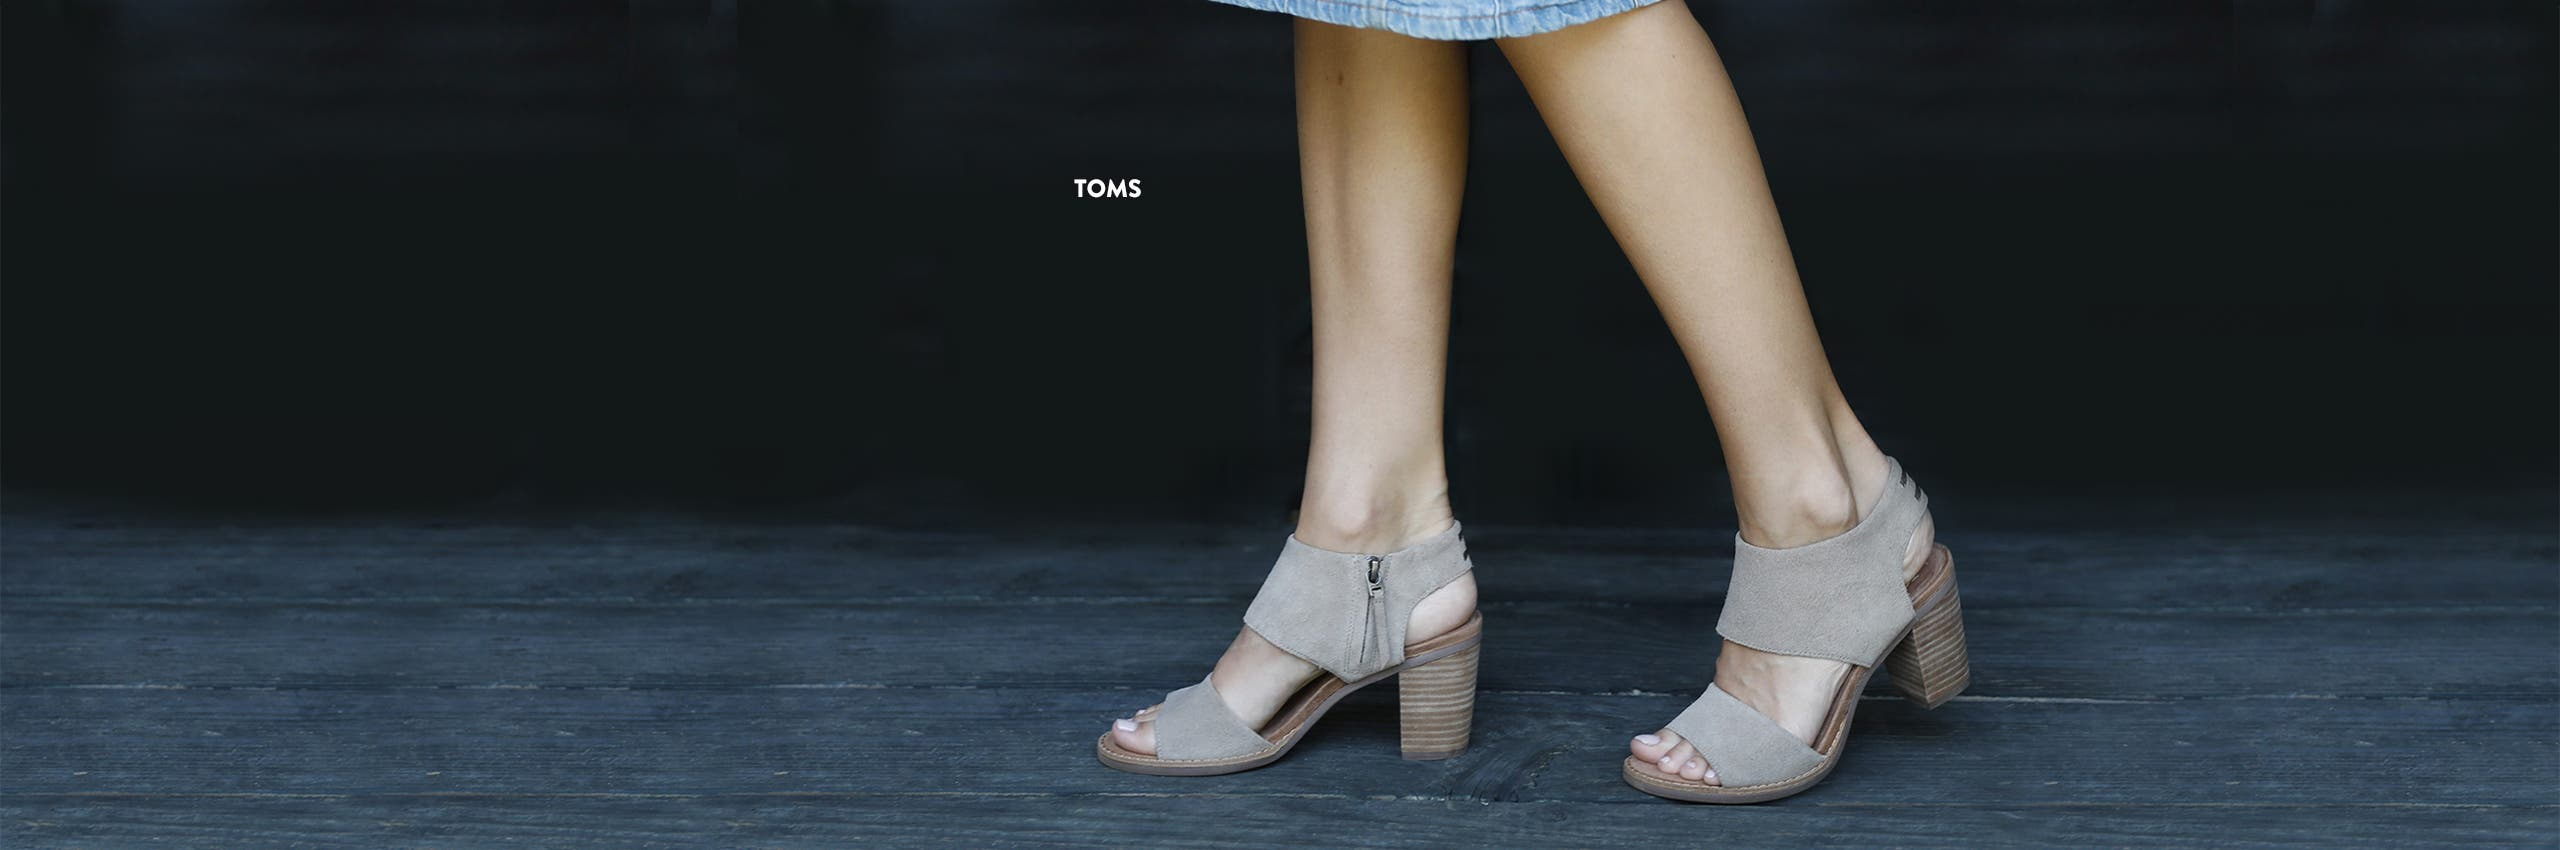 TOMS shoes for women.